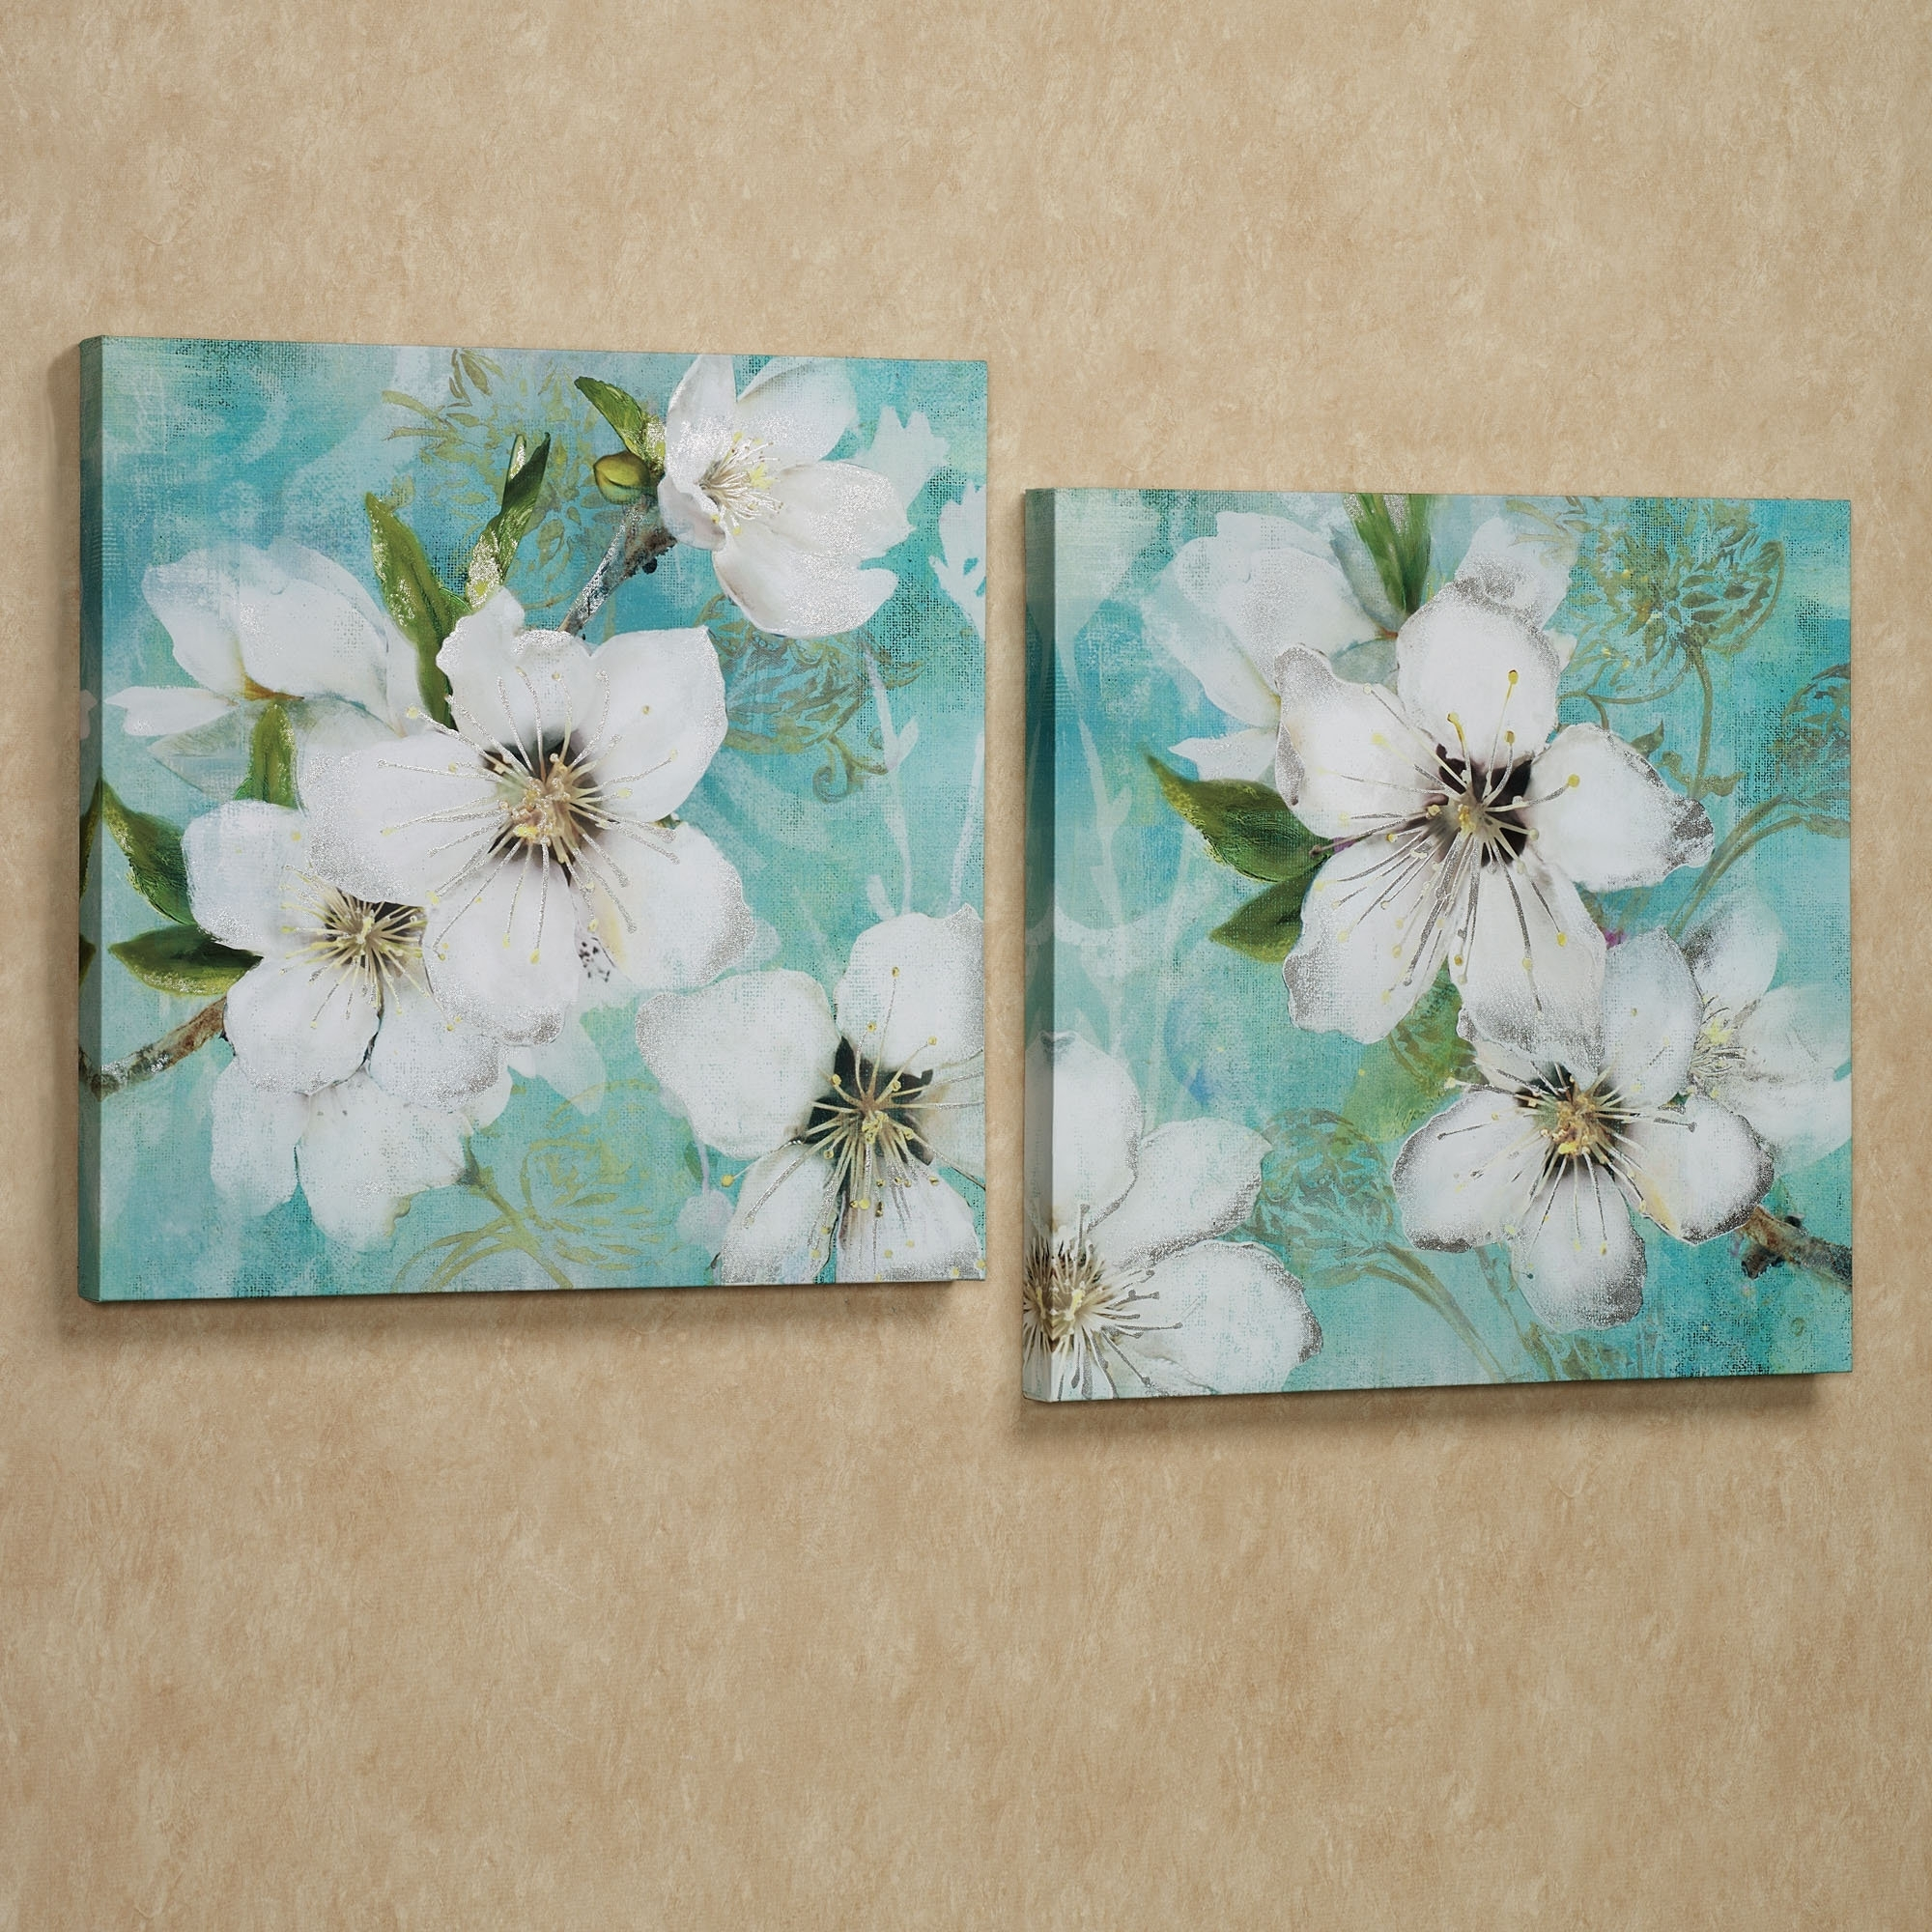 Wall Art Designs: Awesome Floral Wall Art Canvas Flower Wall Decor In Most Current Canvas Wall Art Of Flowers (View 13 of 15)